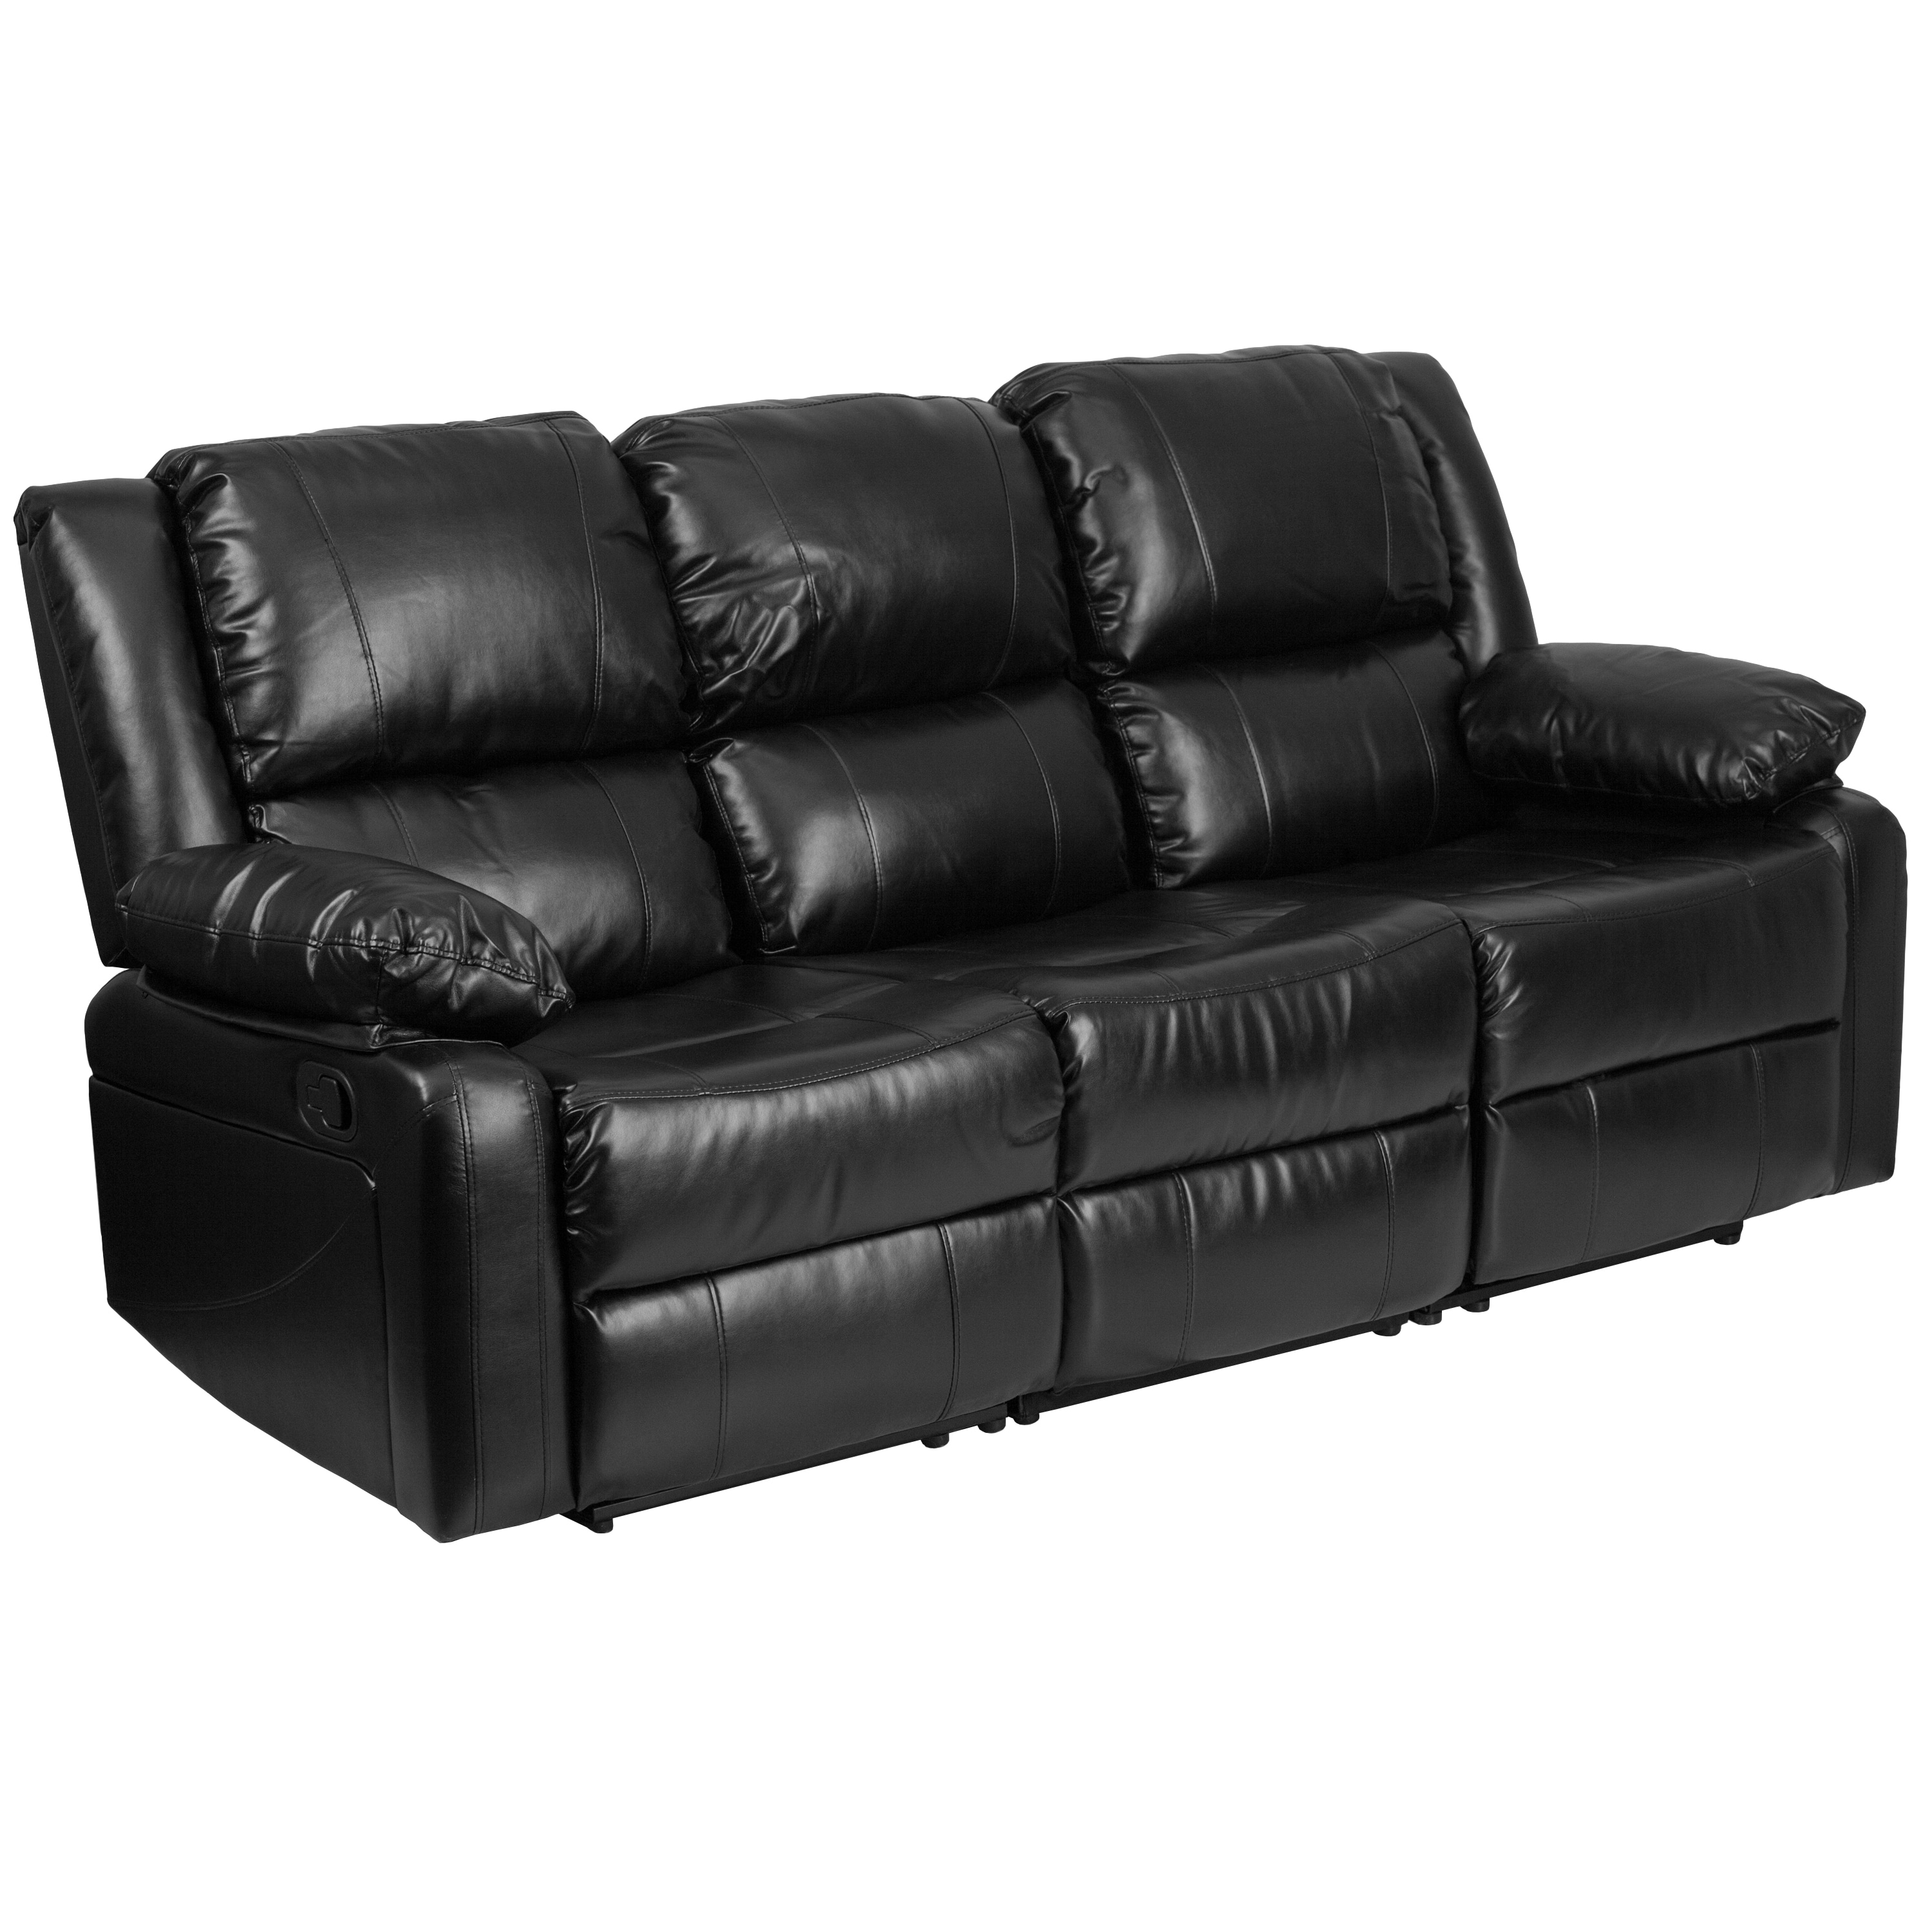 Faux Leather Reclining Sofa, Faux Leather Curved Sectional Sofa